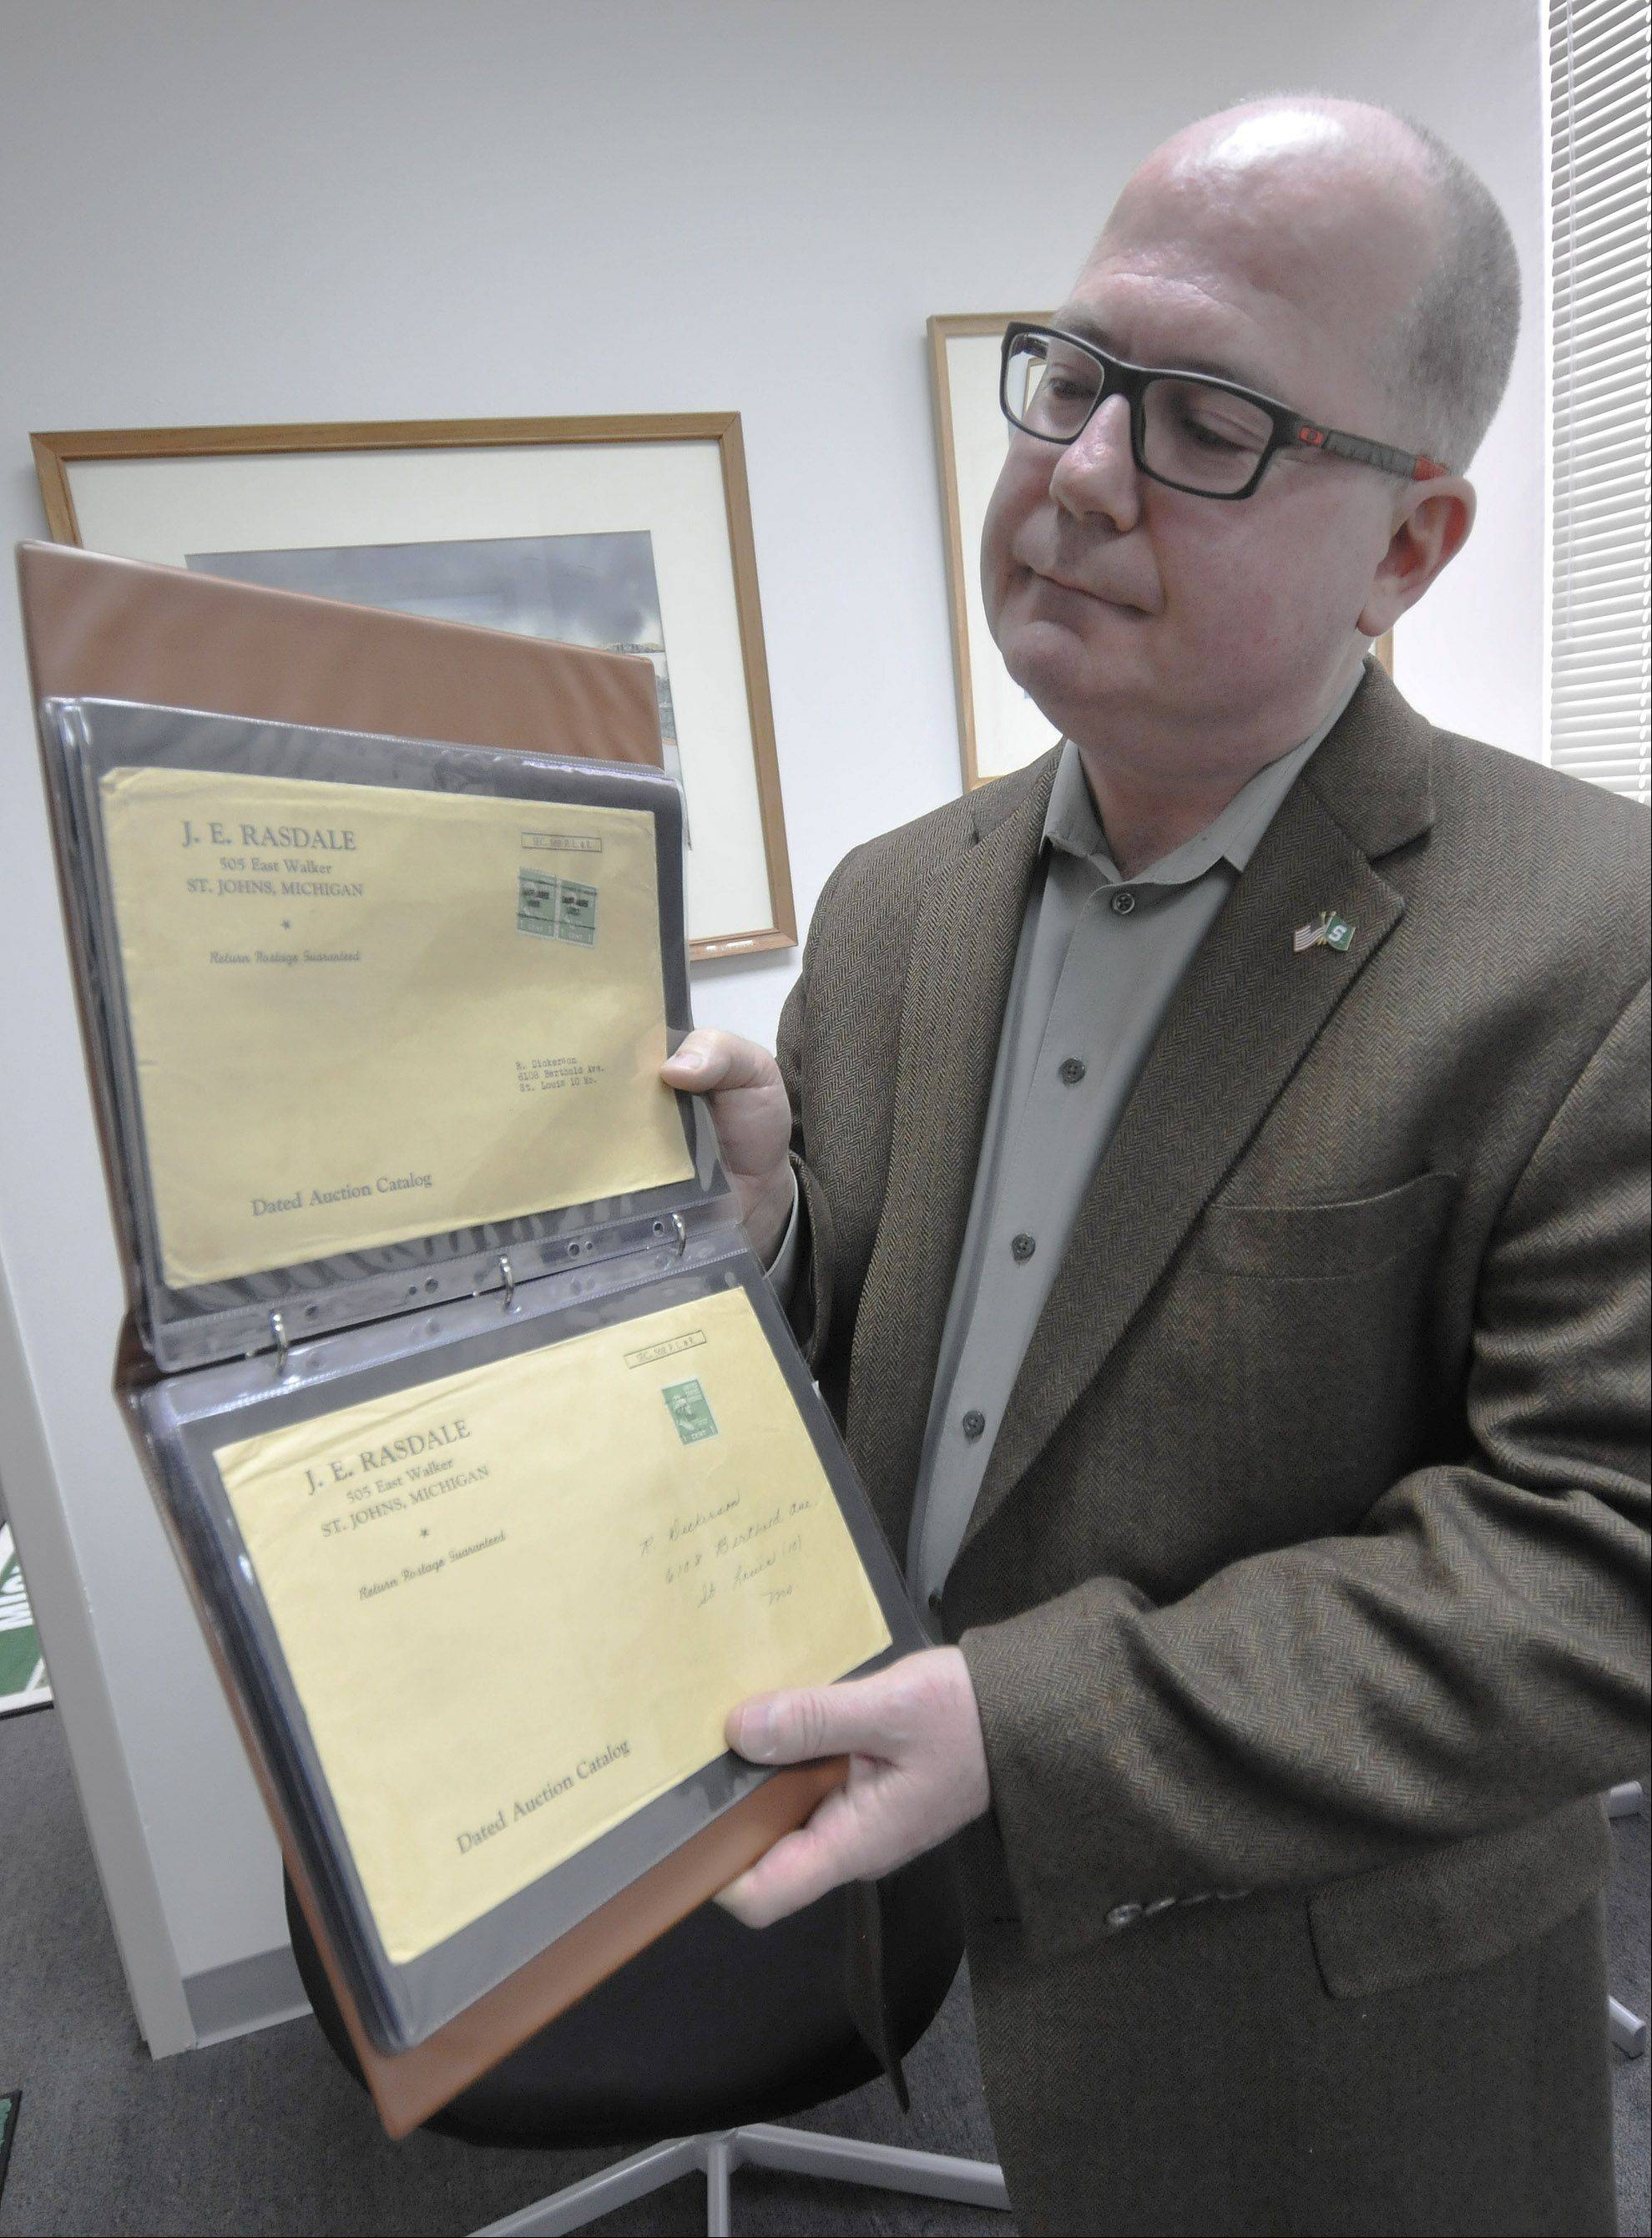 Sometimes the stamps aren't as special as the envelopes, notes Kim Kellermann, one of the owners of Rasdale Stamps in Westmont, as he displays a collection of mail addressed to his grandfather, who started the business in 1932.